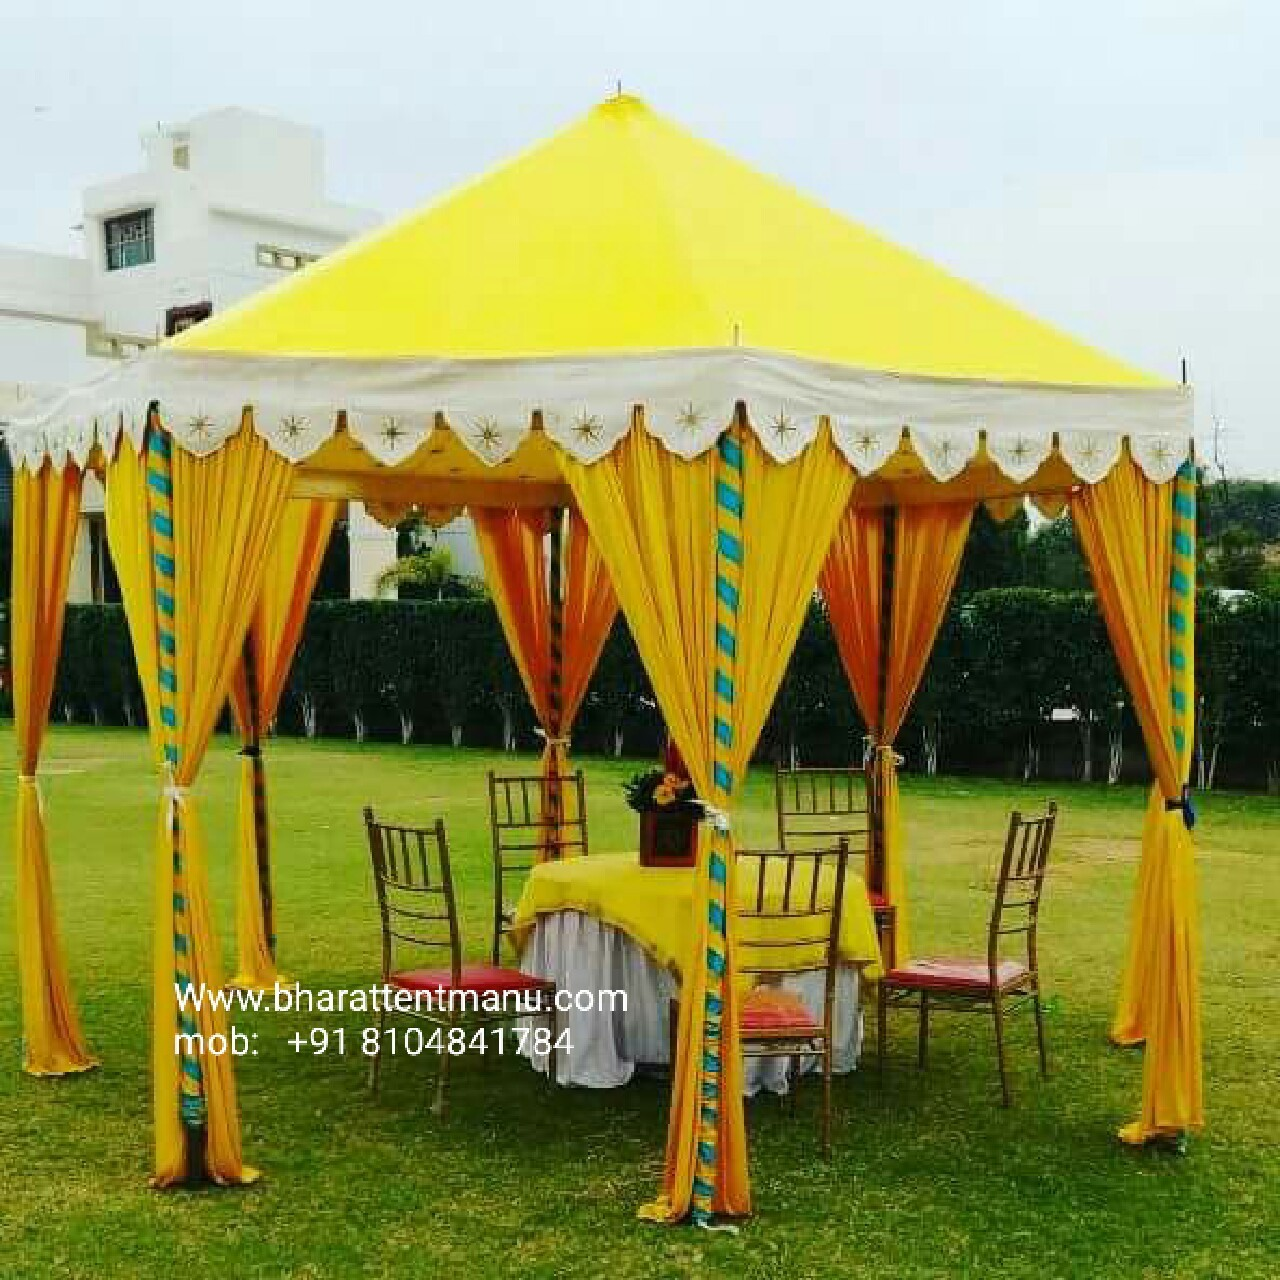 Portable Gazebo Canopy